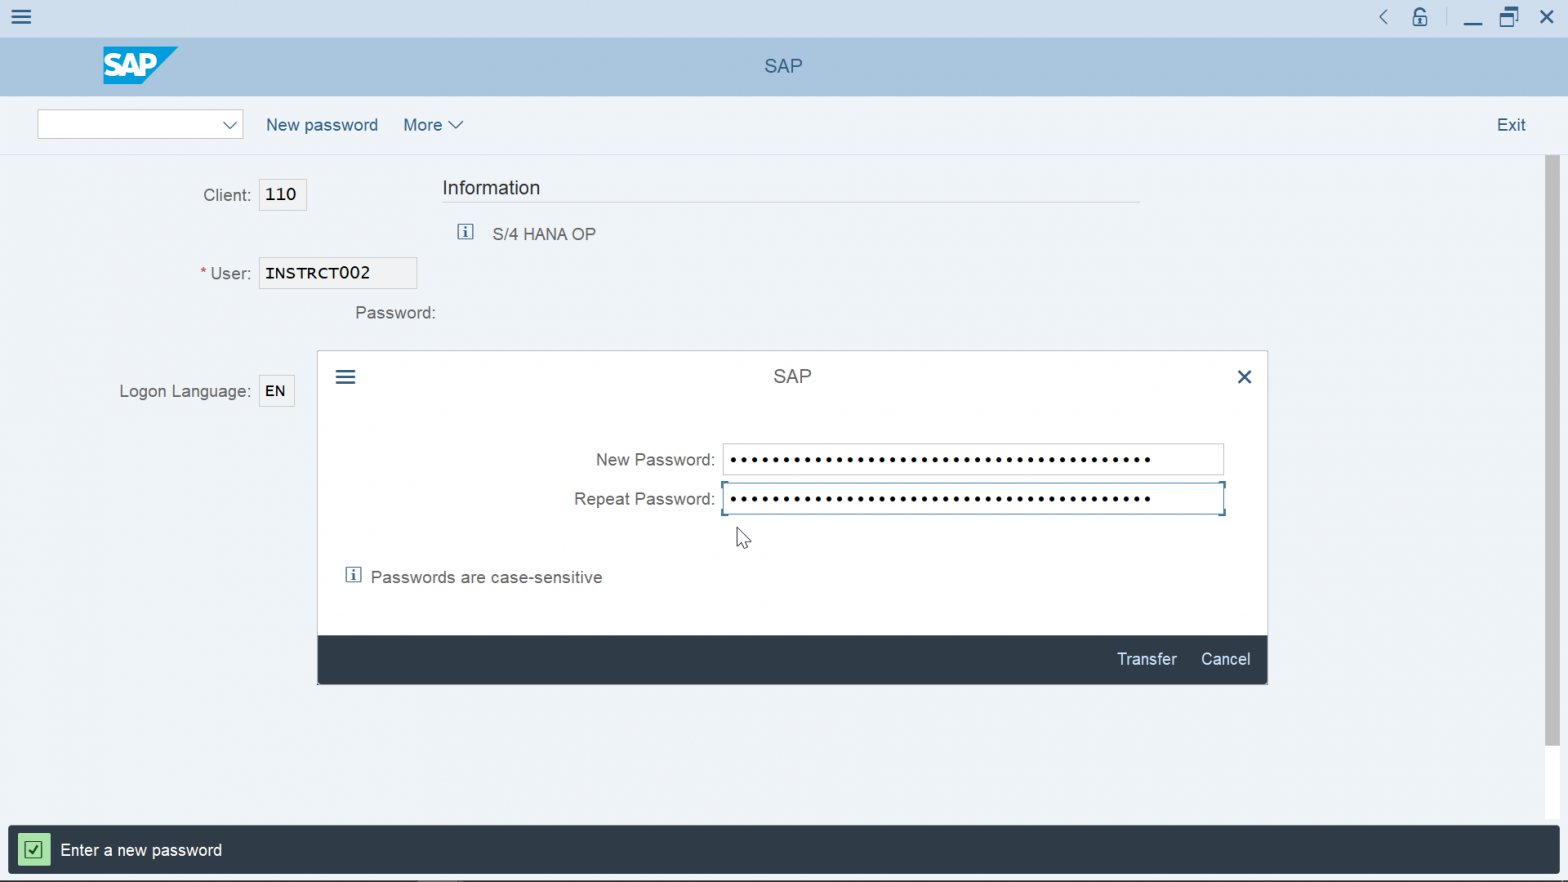 How to change password in SAP?